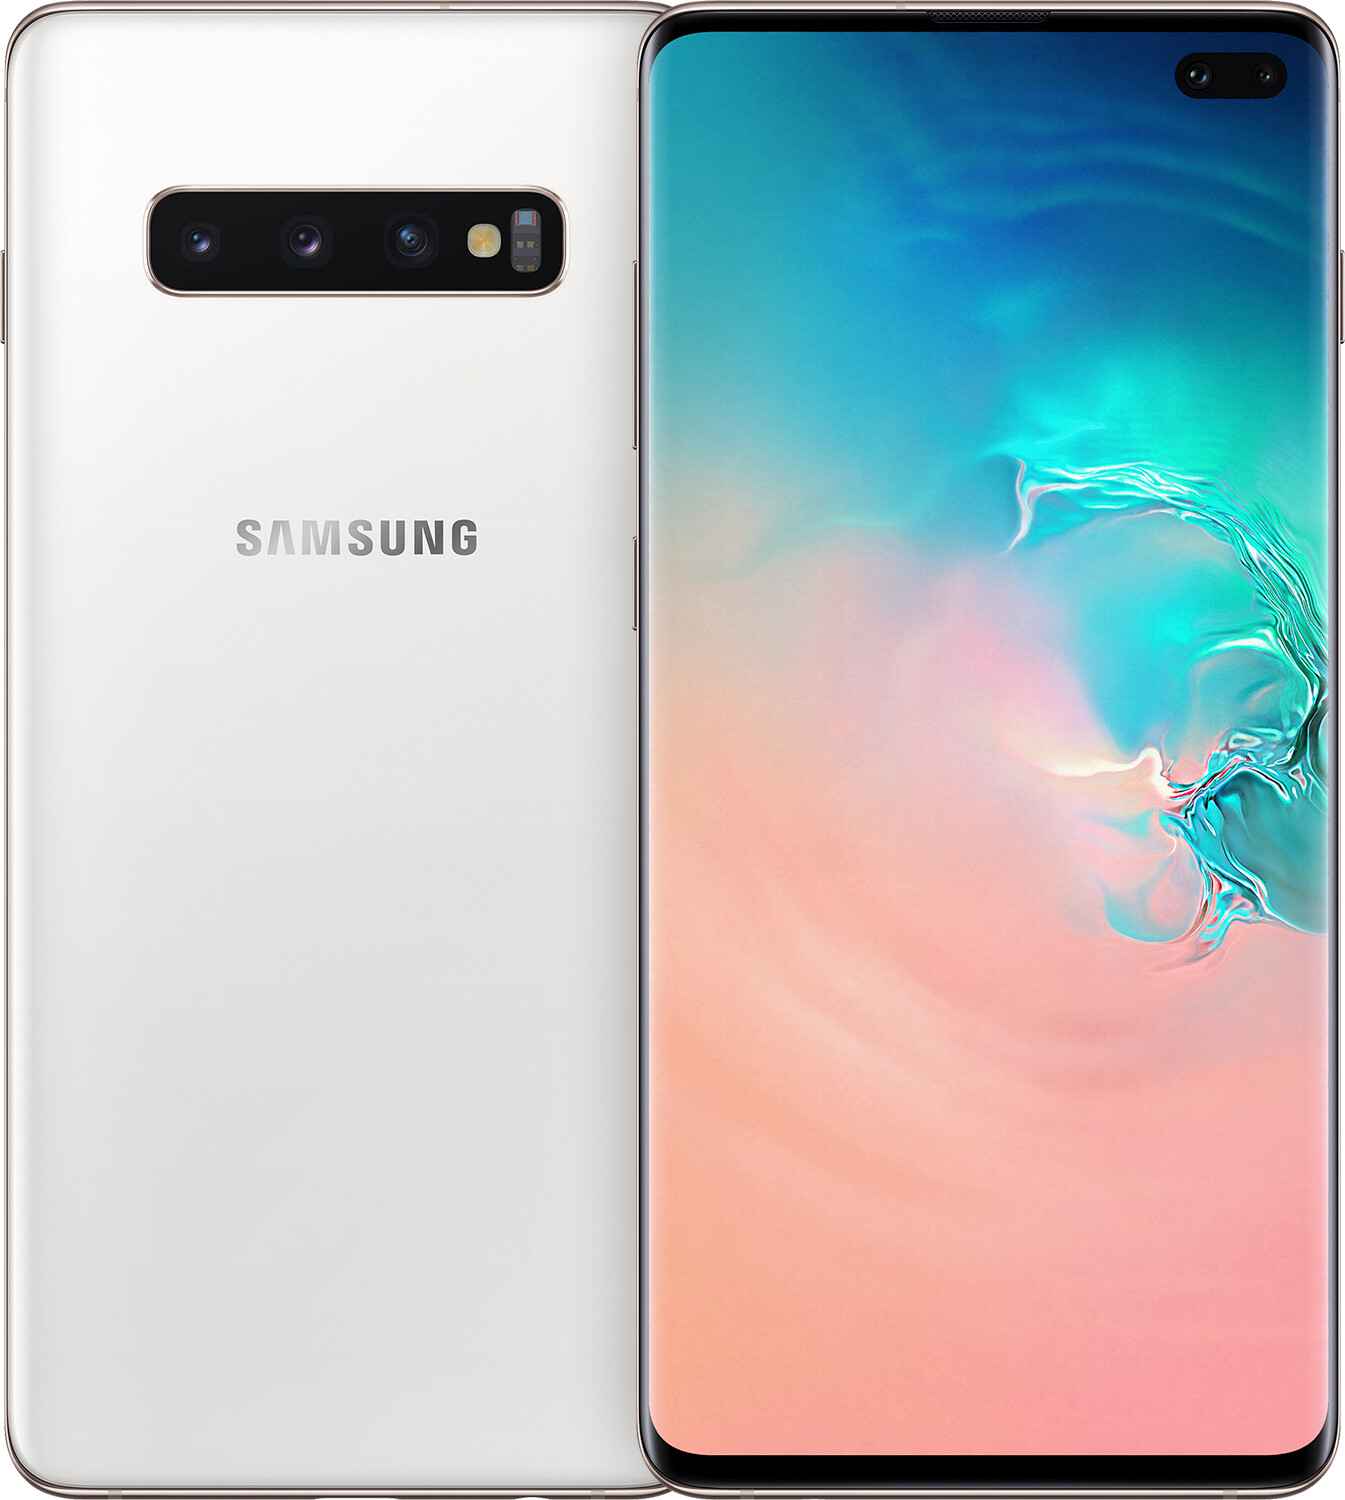 Купить Смартфоны, Смартфон SAMSUNG Galaxy S10 Plus 8/128GB Ceramic White (SM-G975FCWDSEK)